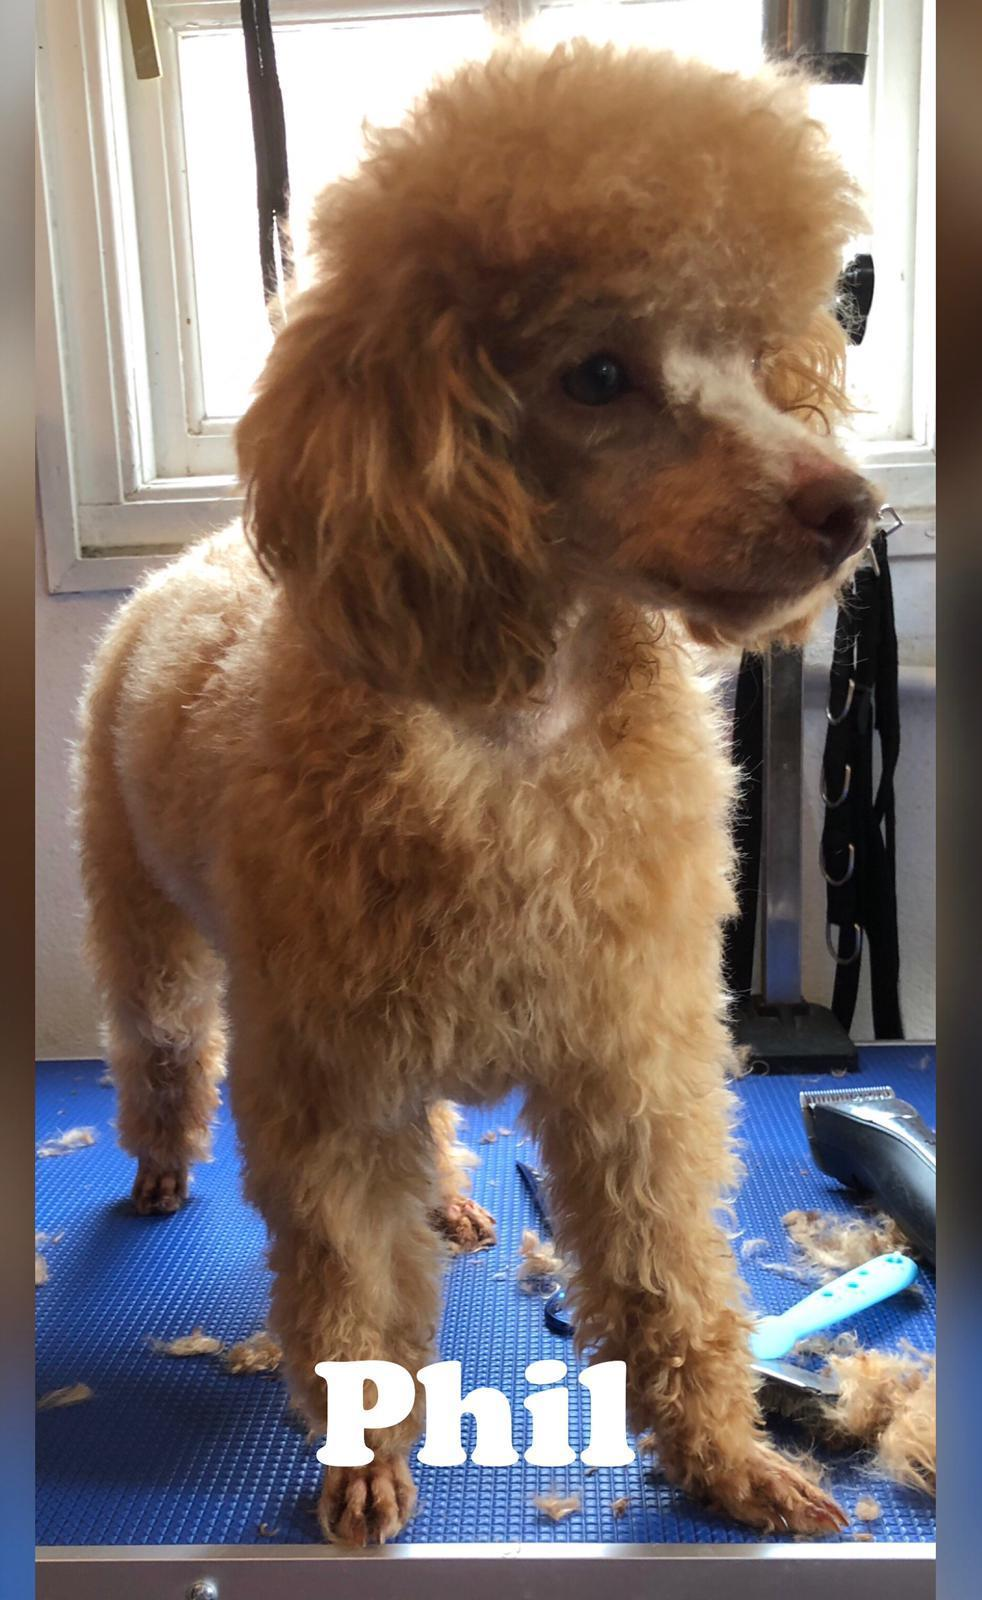 Kc reg red toy poodle FOR STUD not sale in London - Expired